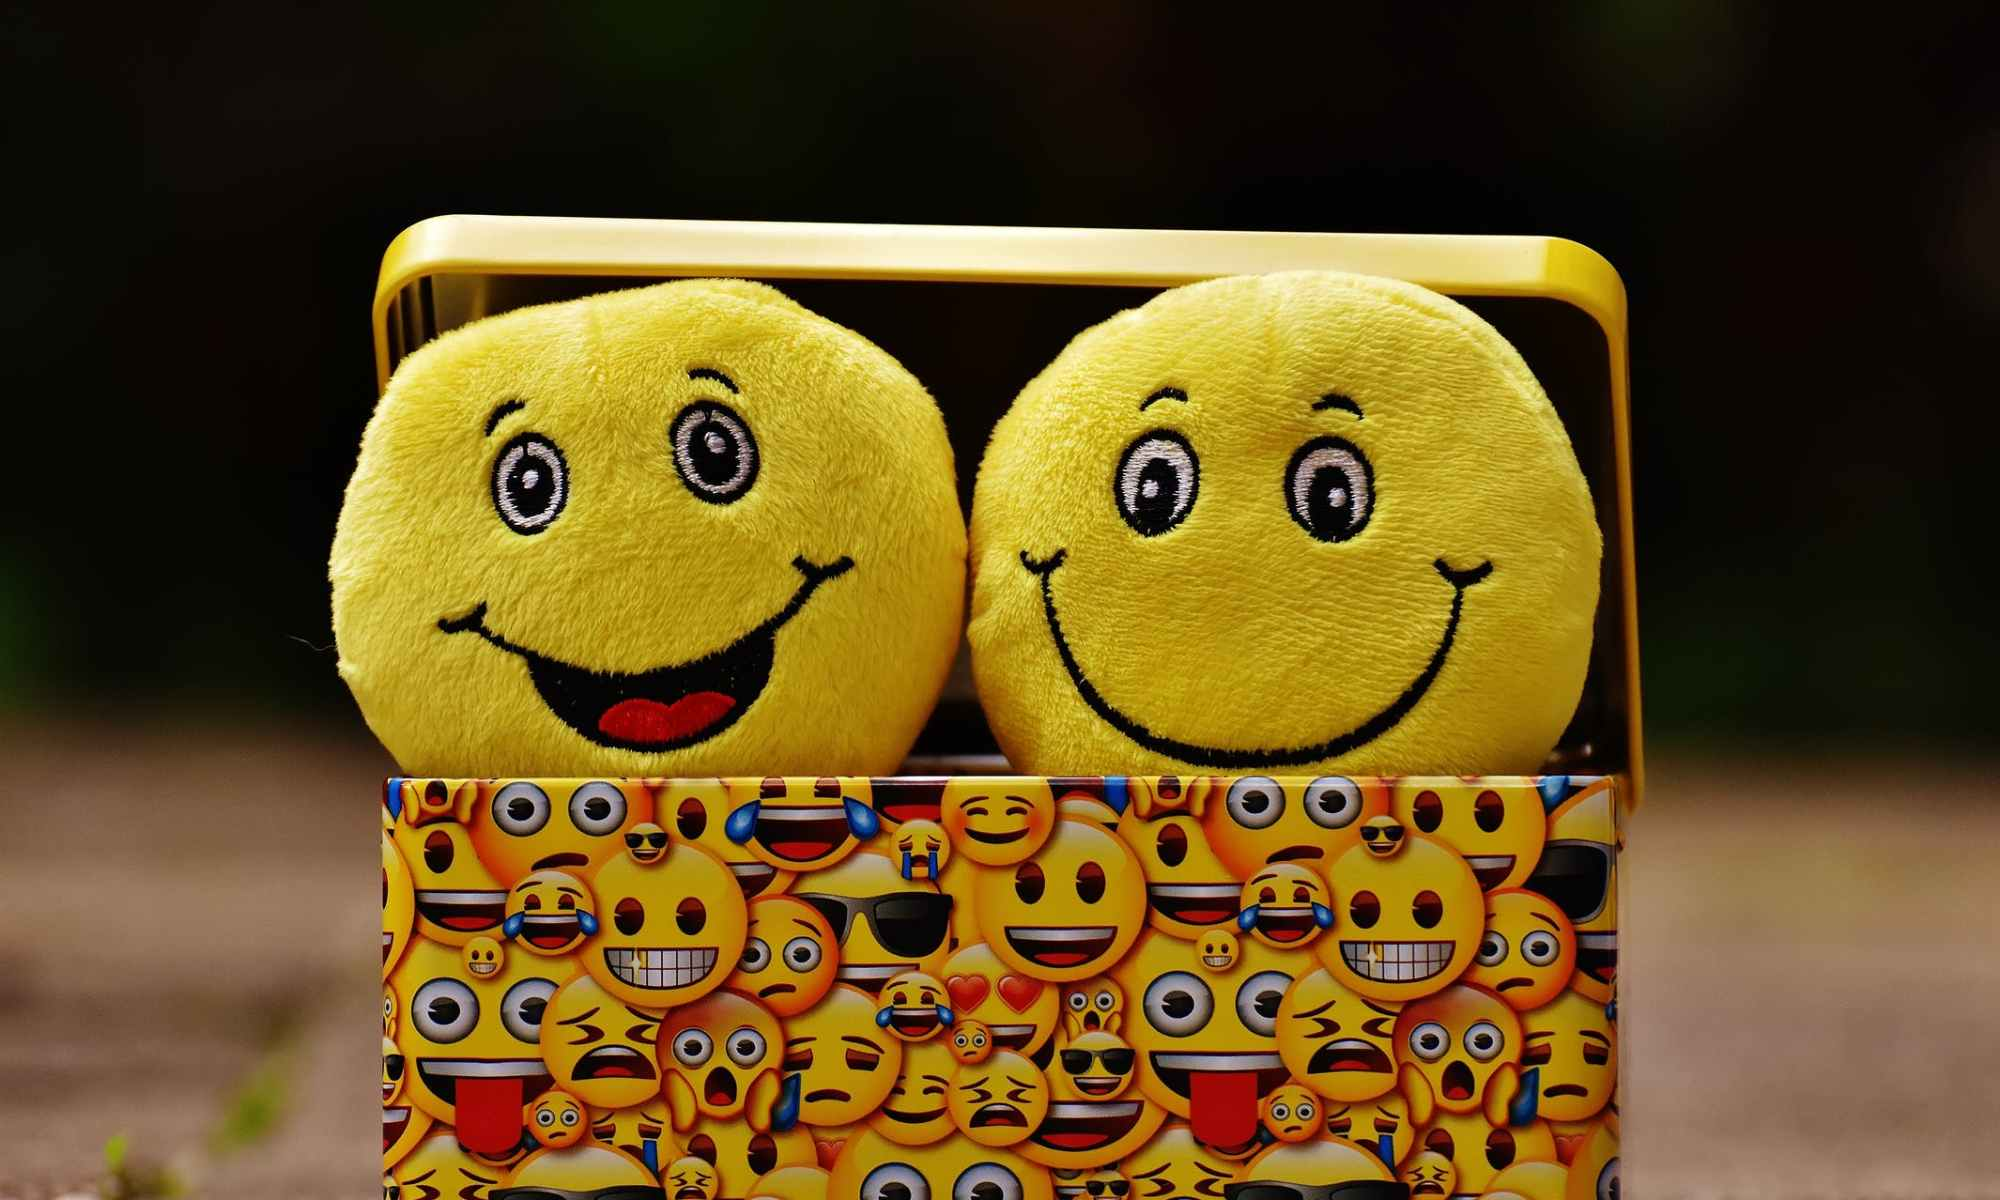 Two yellow smiley emoji on yellow case